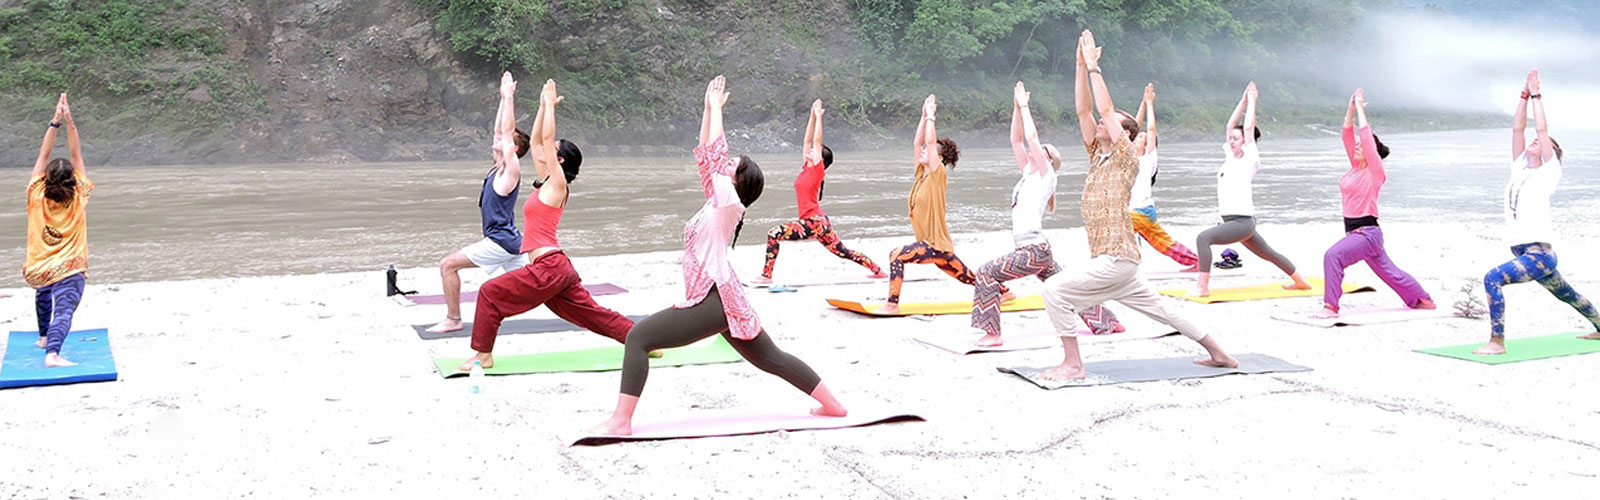 200 Hour Yoga Teacher Training Course in Rishikesh, Uttarakhand, India at Haritha Yogshala